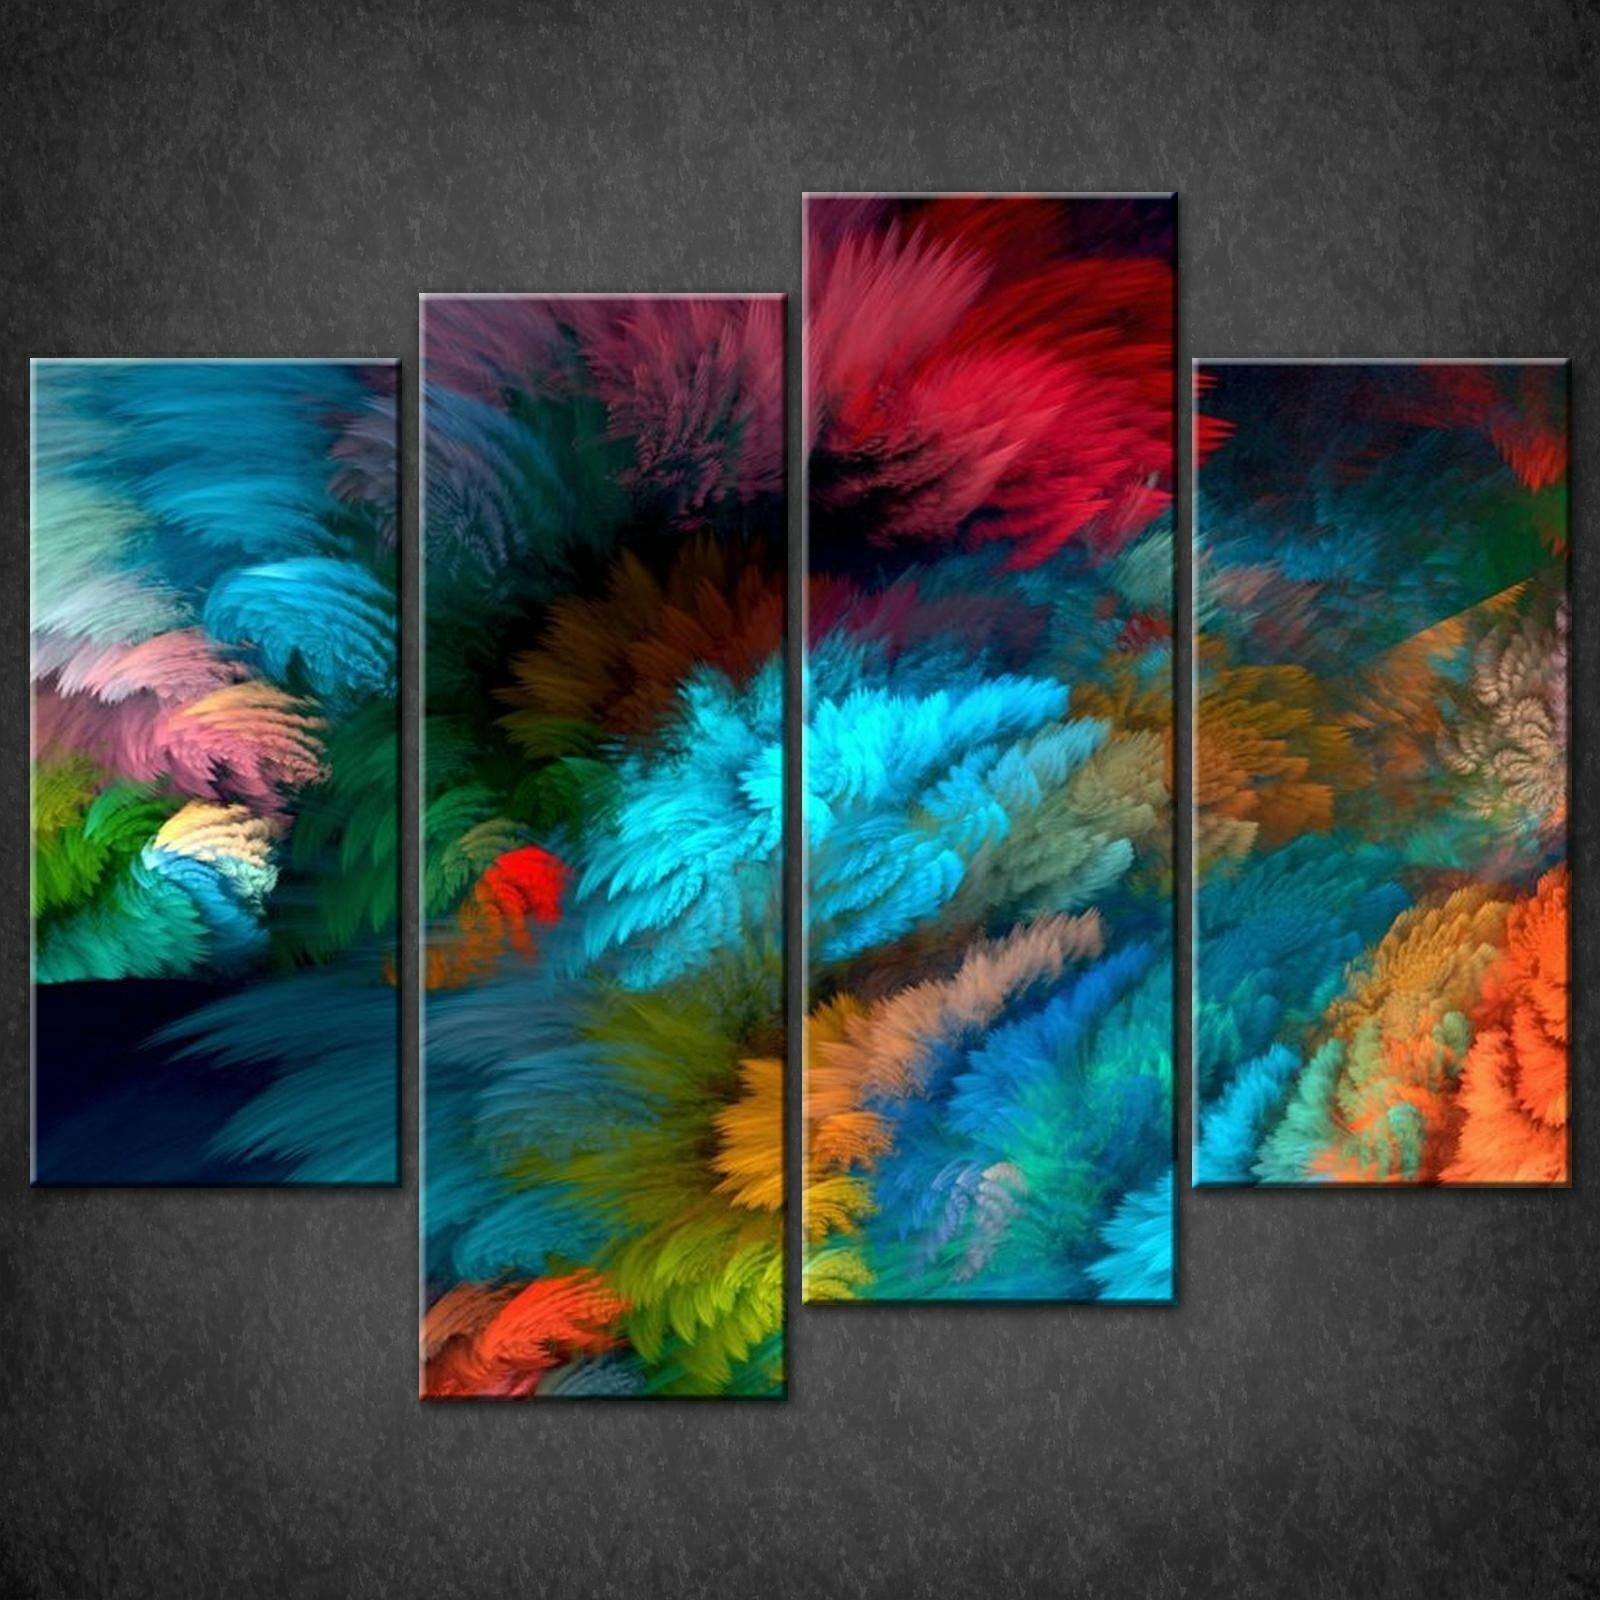 Decor: Large Abstract Colourful Split Canvas Wall Art Pictures Prints Intended For Most Recent Abstract Canvas Wall Art (View 11 of 20)